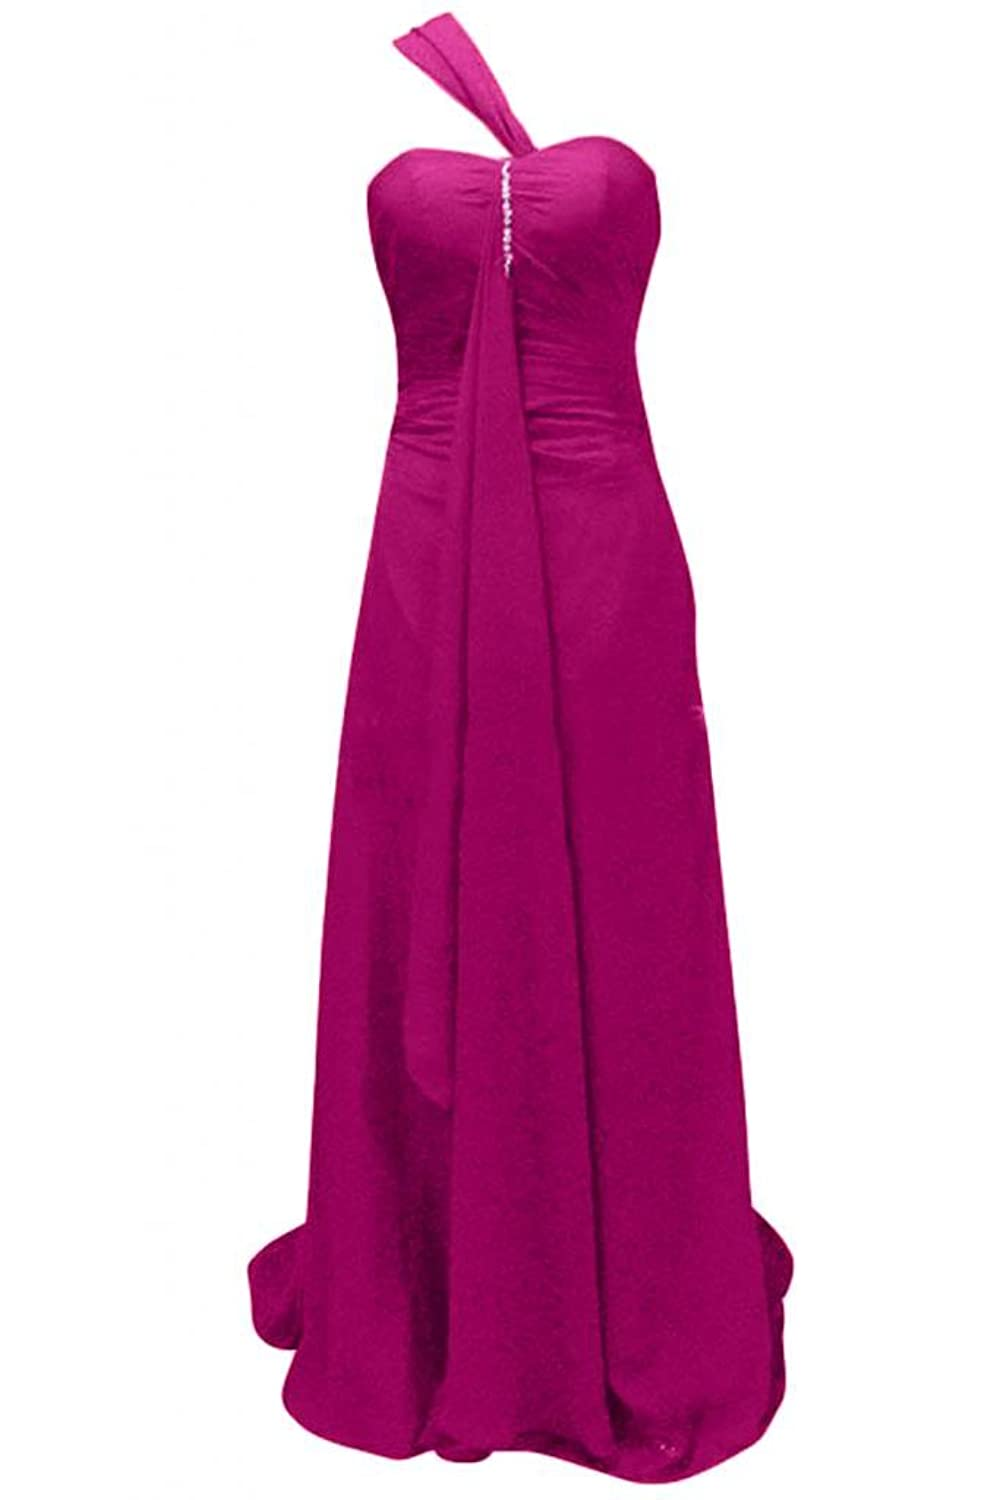 Sunvary Formal Halter Bodice Open Back Party Bridesmaid Dresses Short